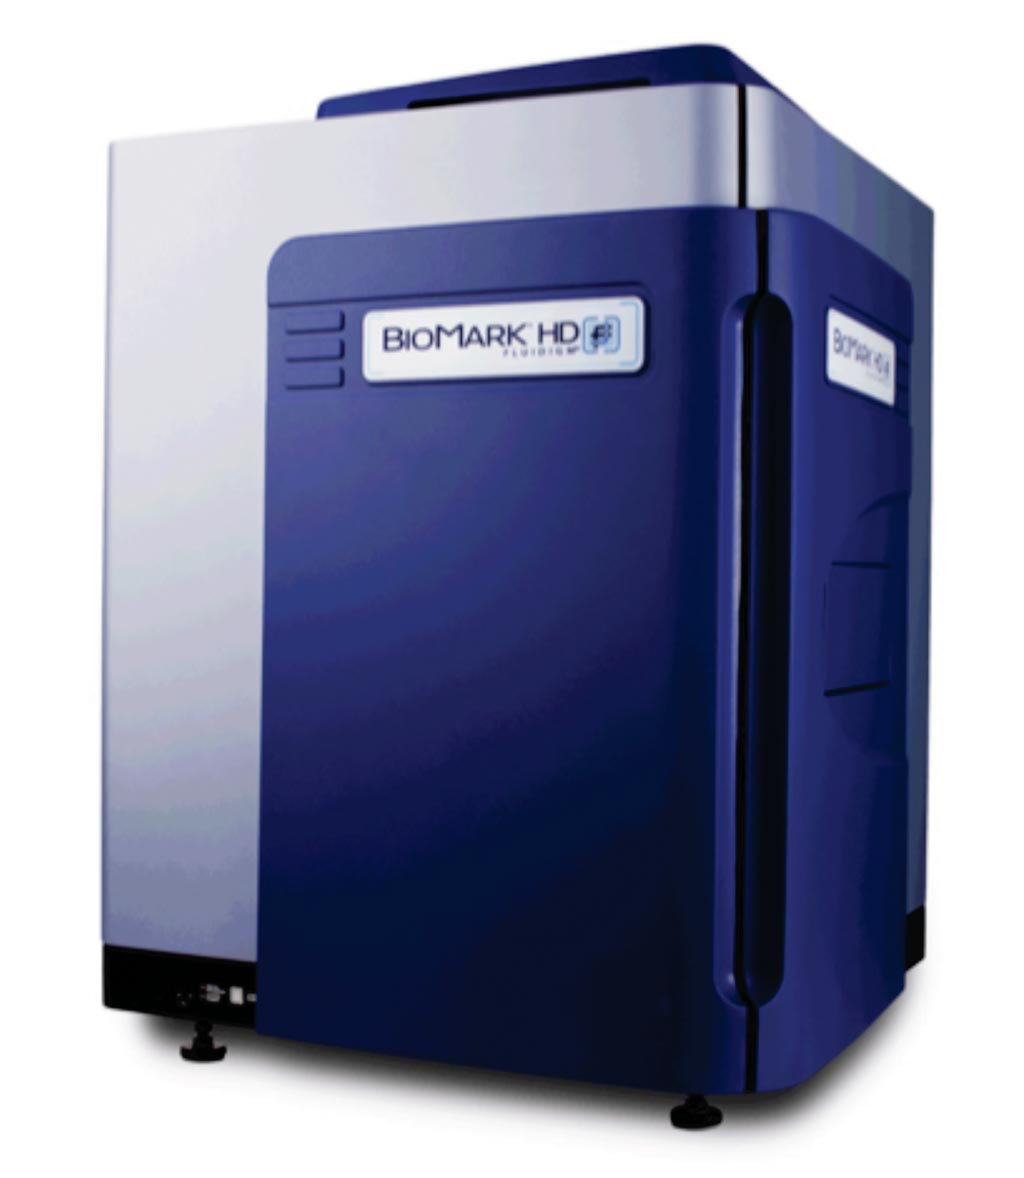 Image: The BioMark HD real-time polymerase chain reaction (PCR) platform (Photo courtesy of Fluidigm).